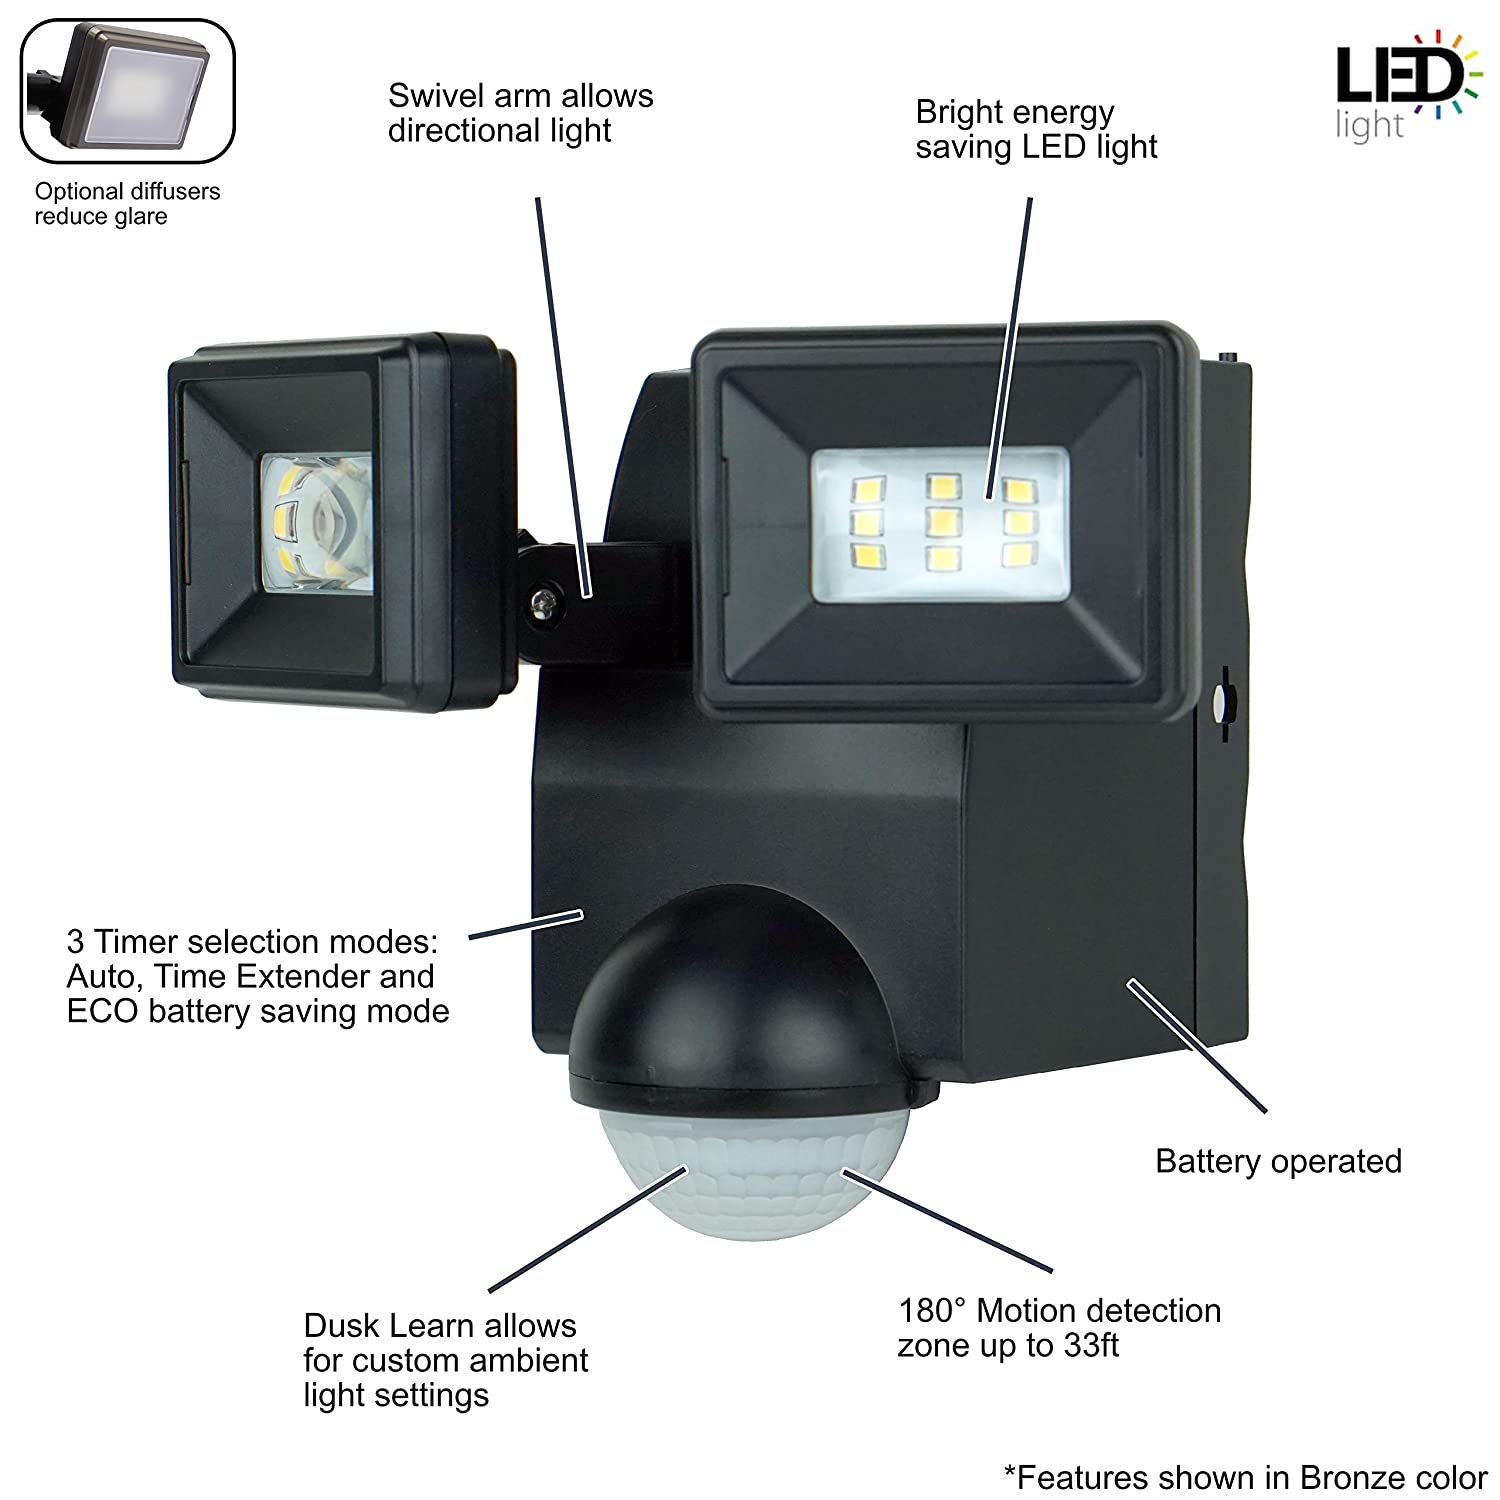 Includes L-Bracket for Easy Mount White Twin Head LB1870QWH 700 Lumen Battery Operated LED Motion Security Light